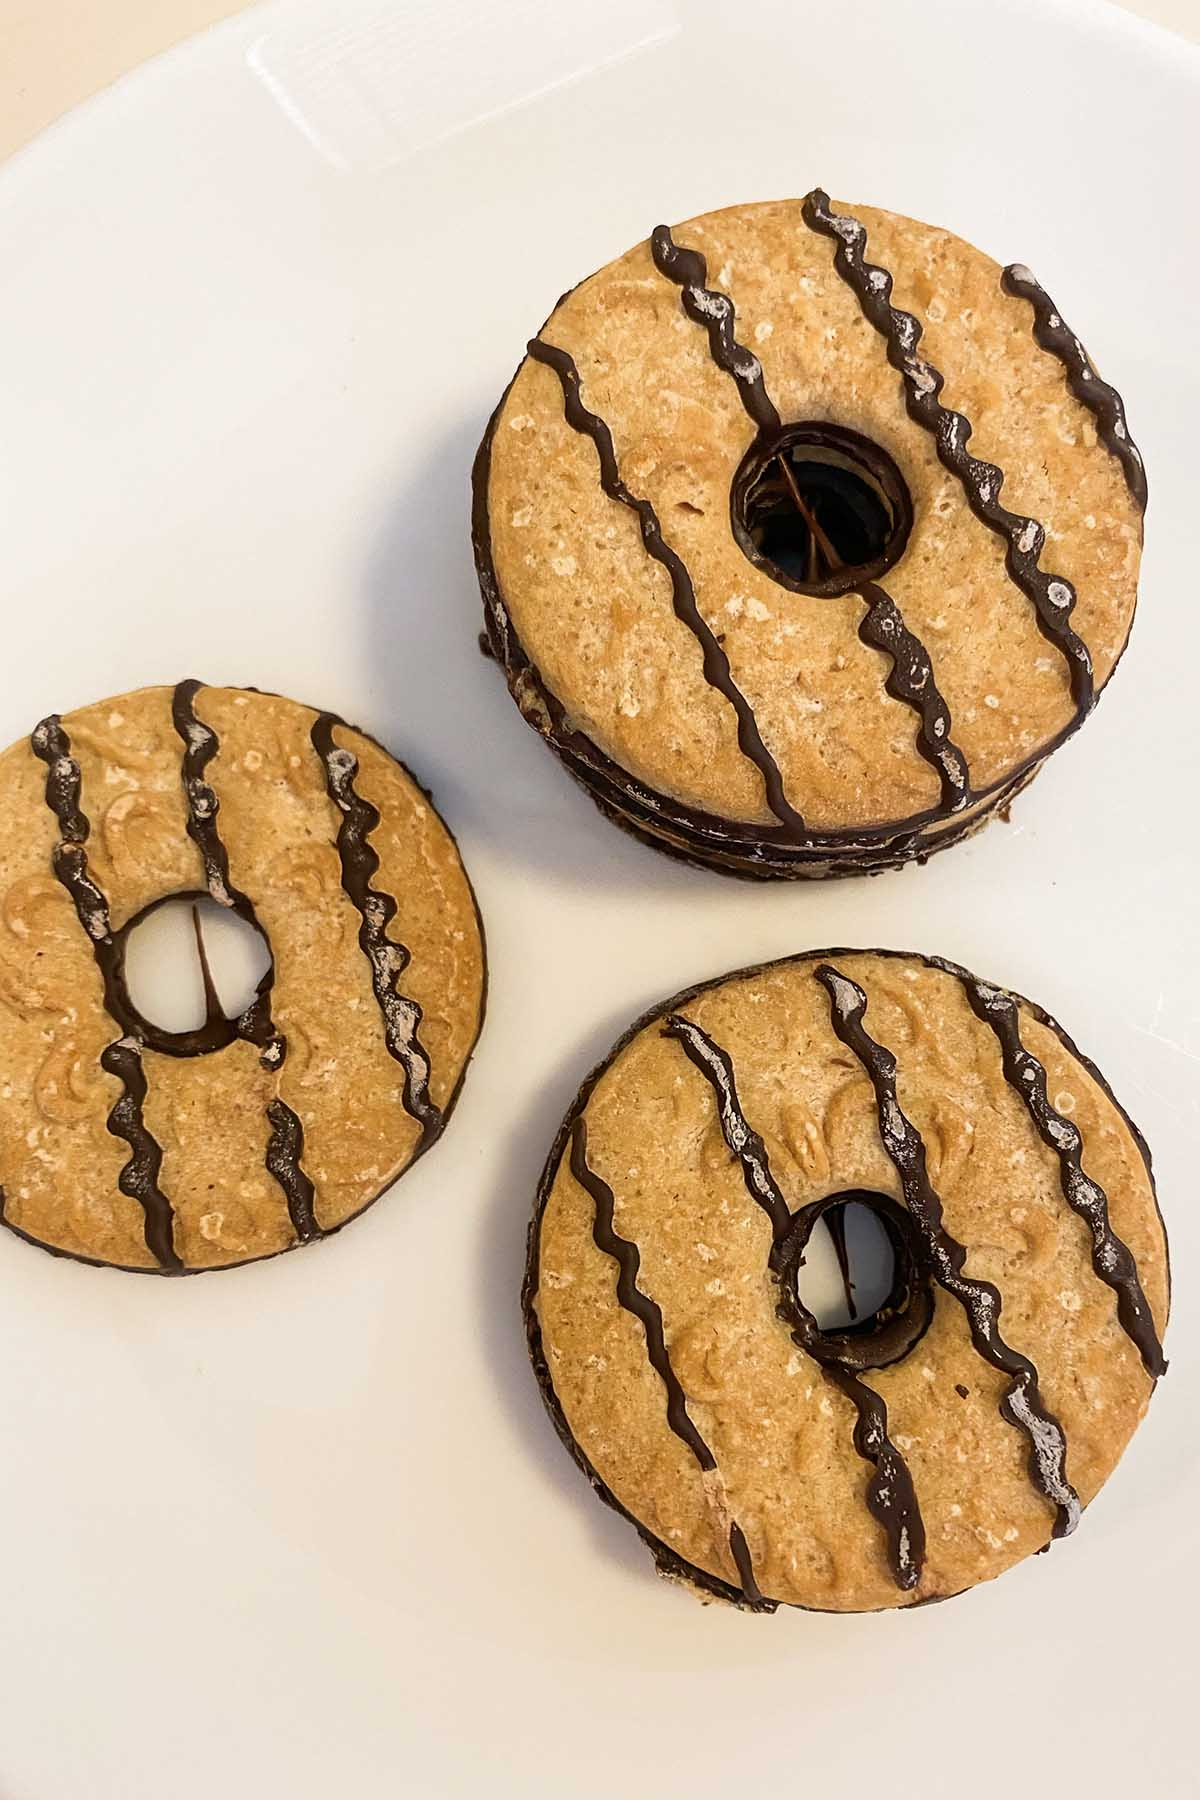 Back to Nature Fudge Stripe Cookies on a white plate